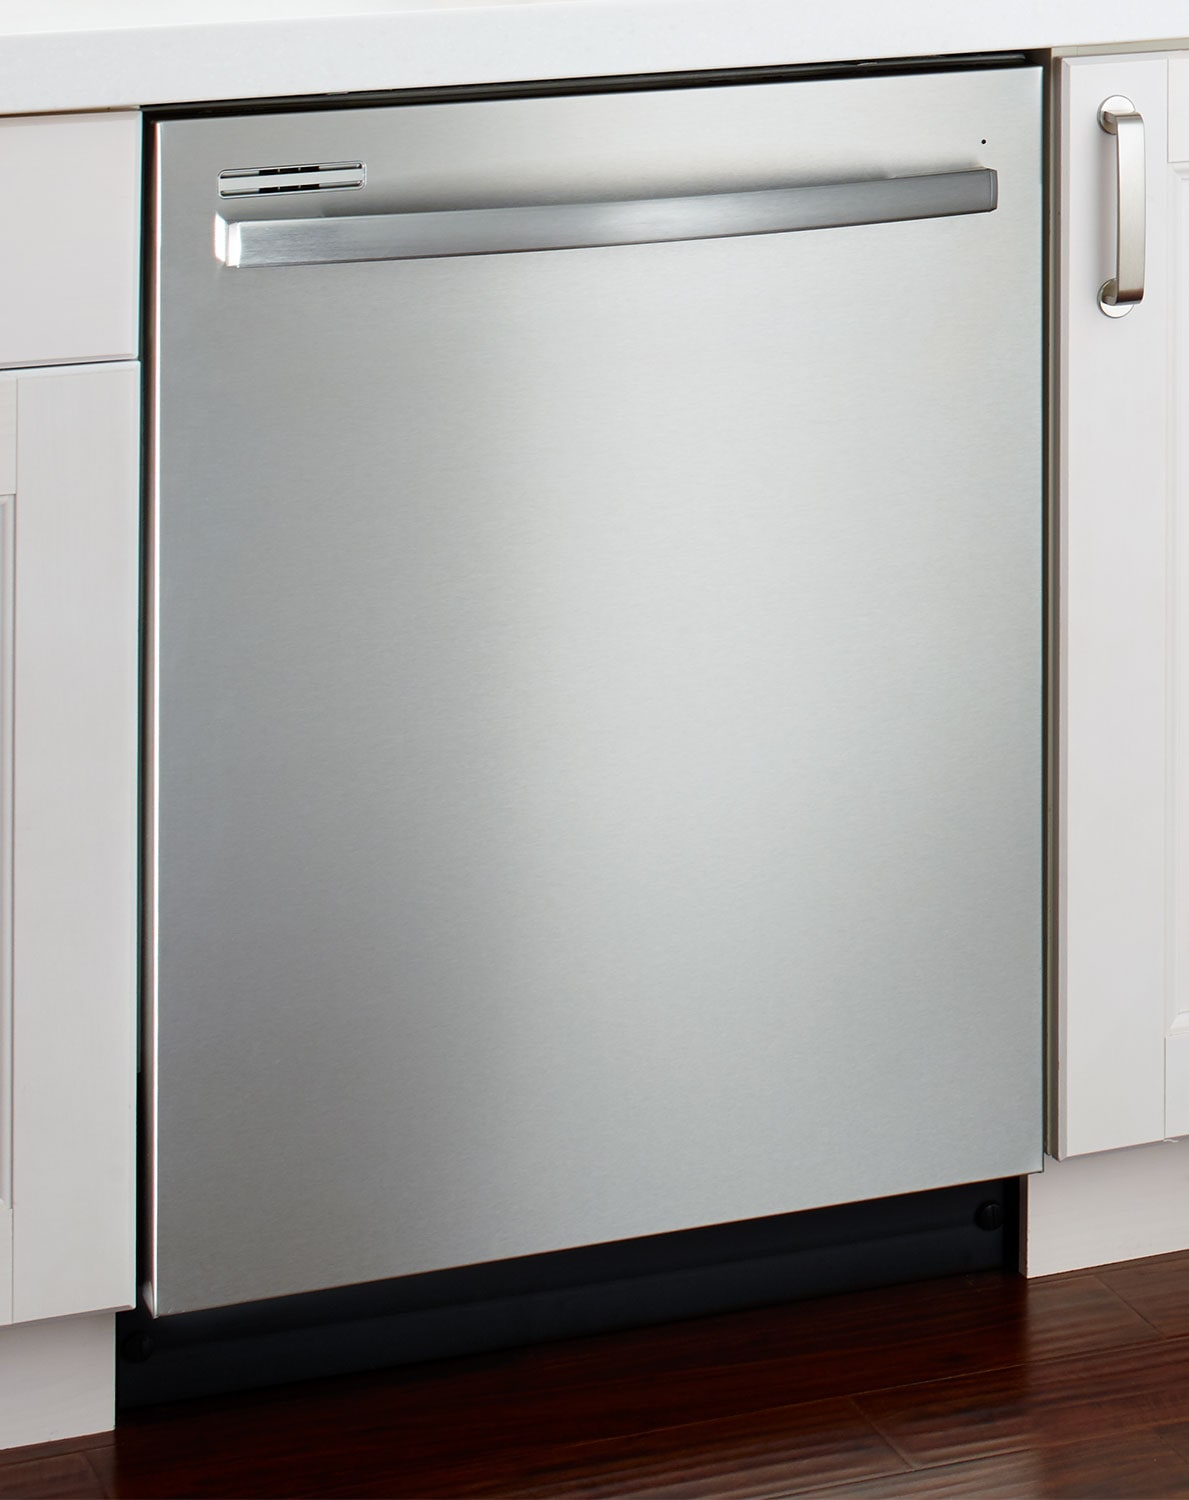 "Clean-Up - Amana 24"" Stainless Steel Dishwasher - ADB1500ADS"